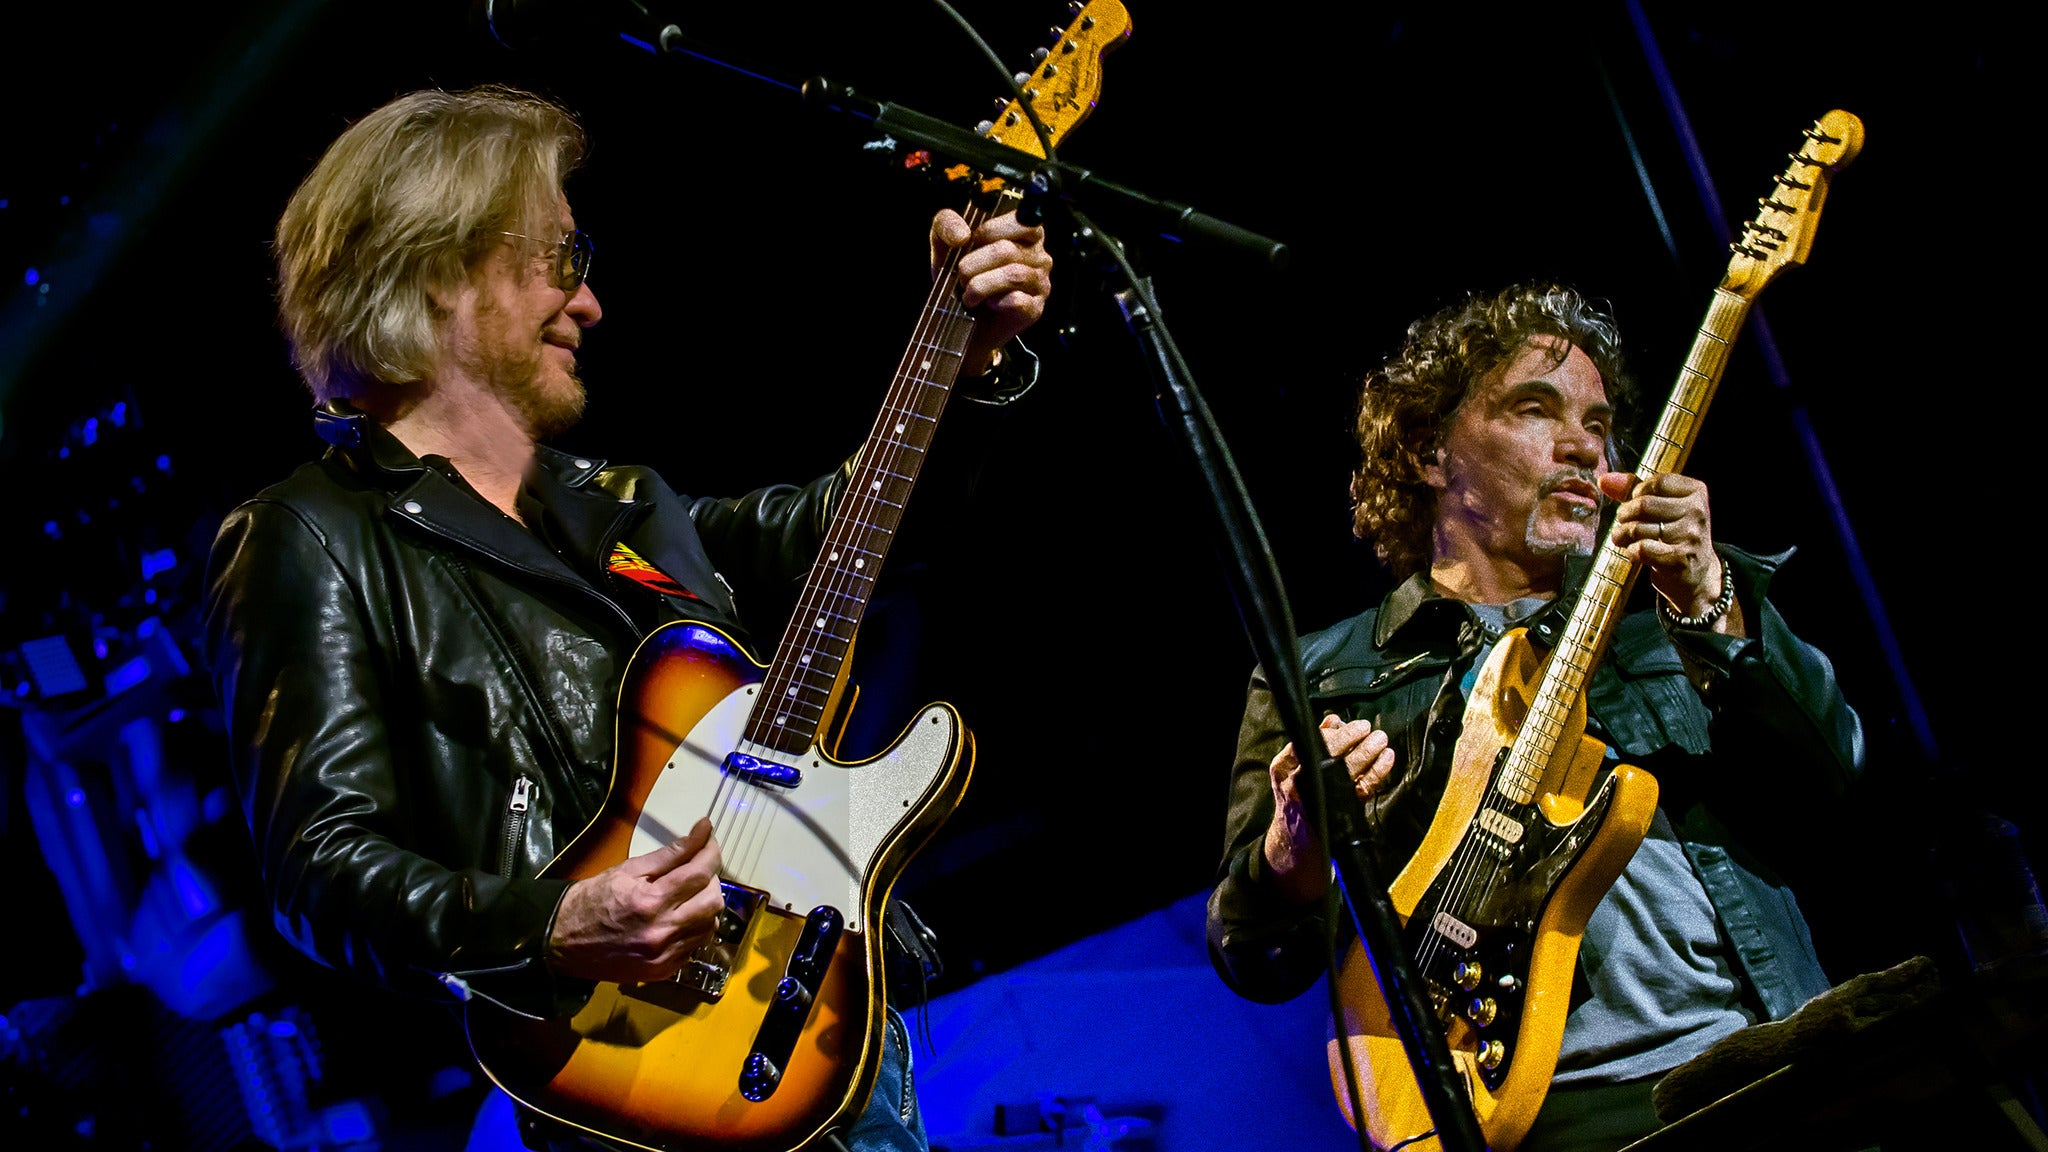 Daryl Hall & John Oates at Ameris Bank Amphitheatre